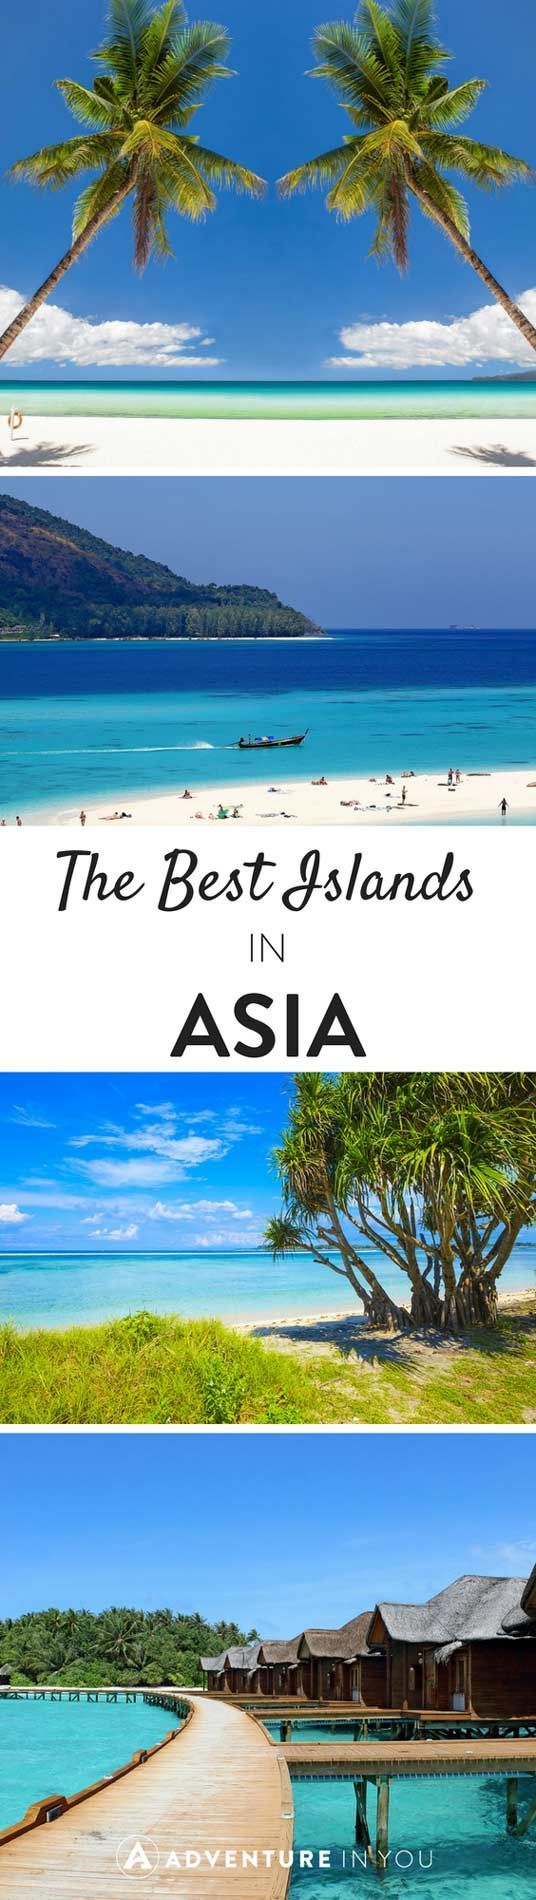 119 best images about thailand on pinterest thailand travel